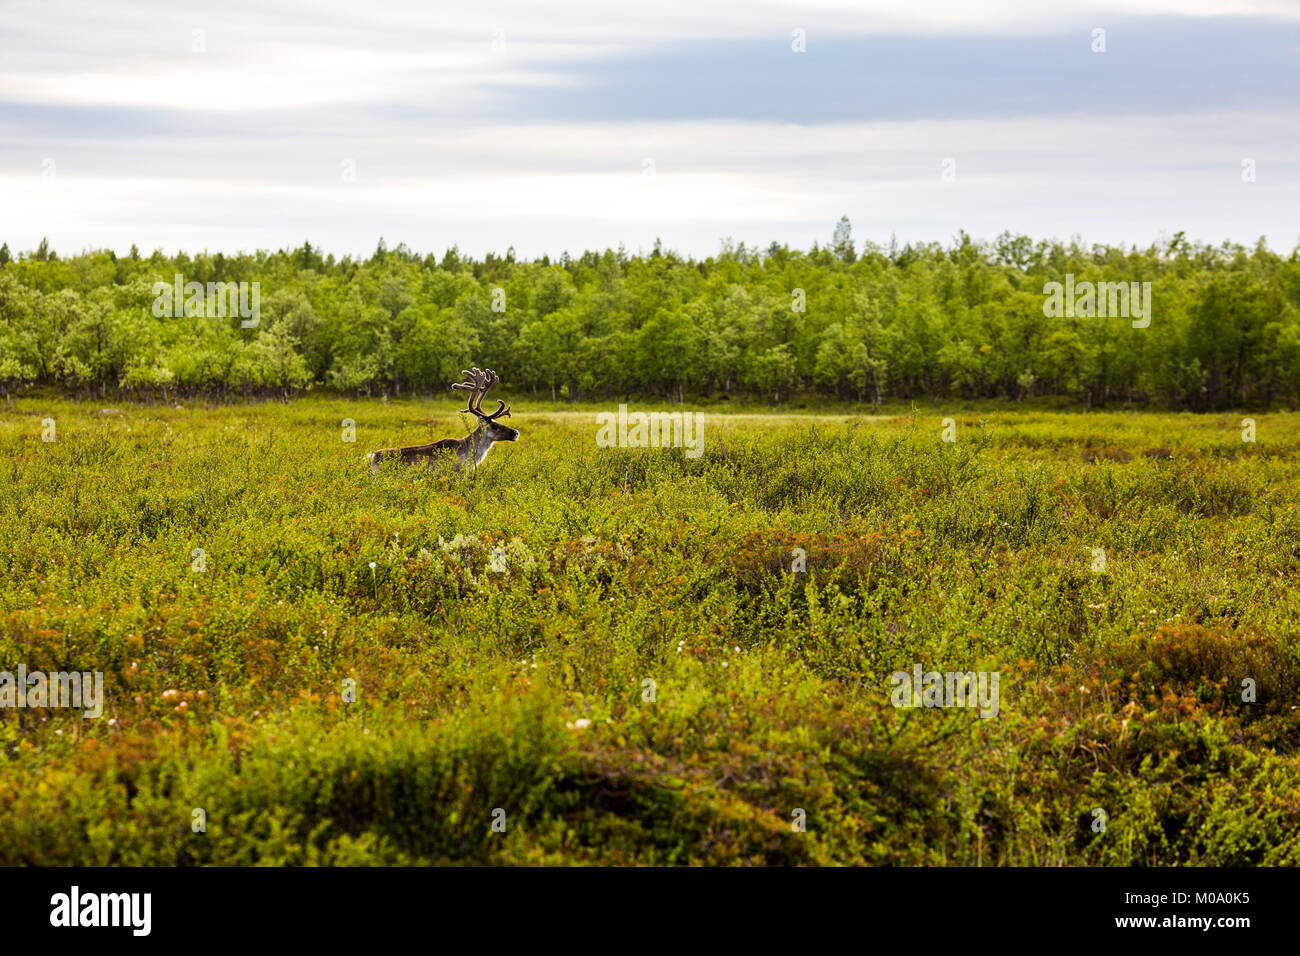 A reindeer in Lapland, Finland. Stock Photo